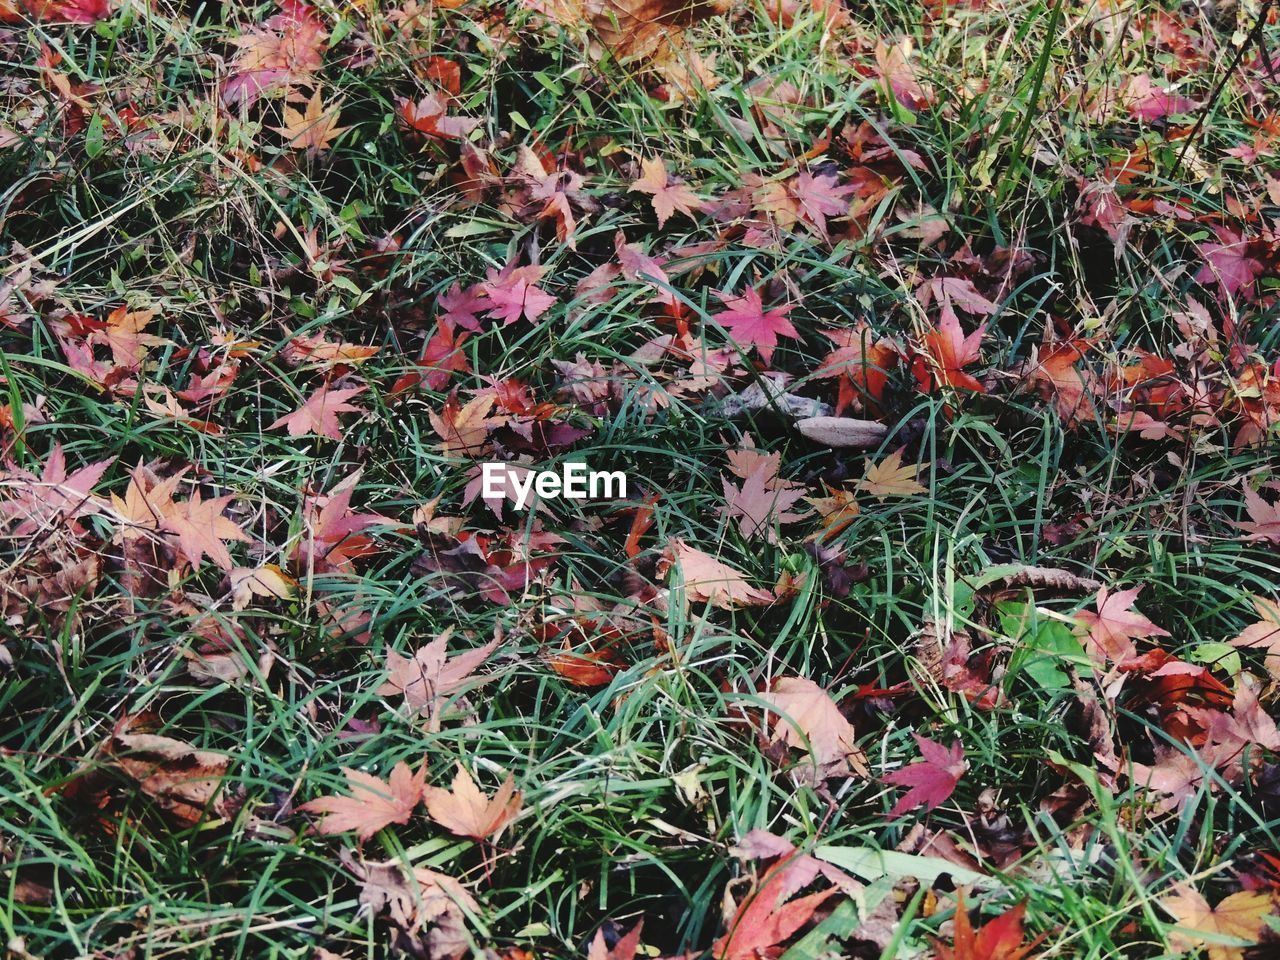 autumn, nature, grass, leaves, field, leaf, change, growth, fallen, outdoors, high angle view, red, beauty in nature, day, no people, close-up